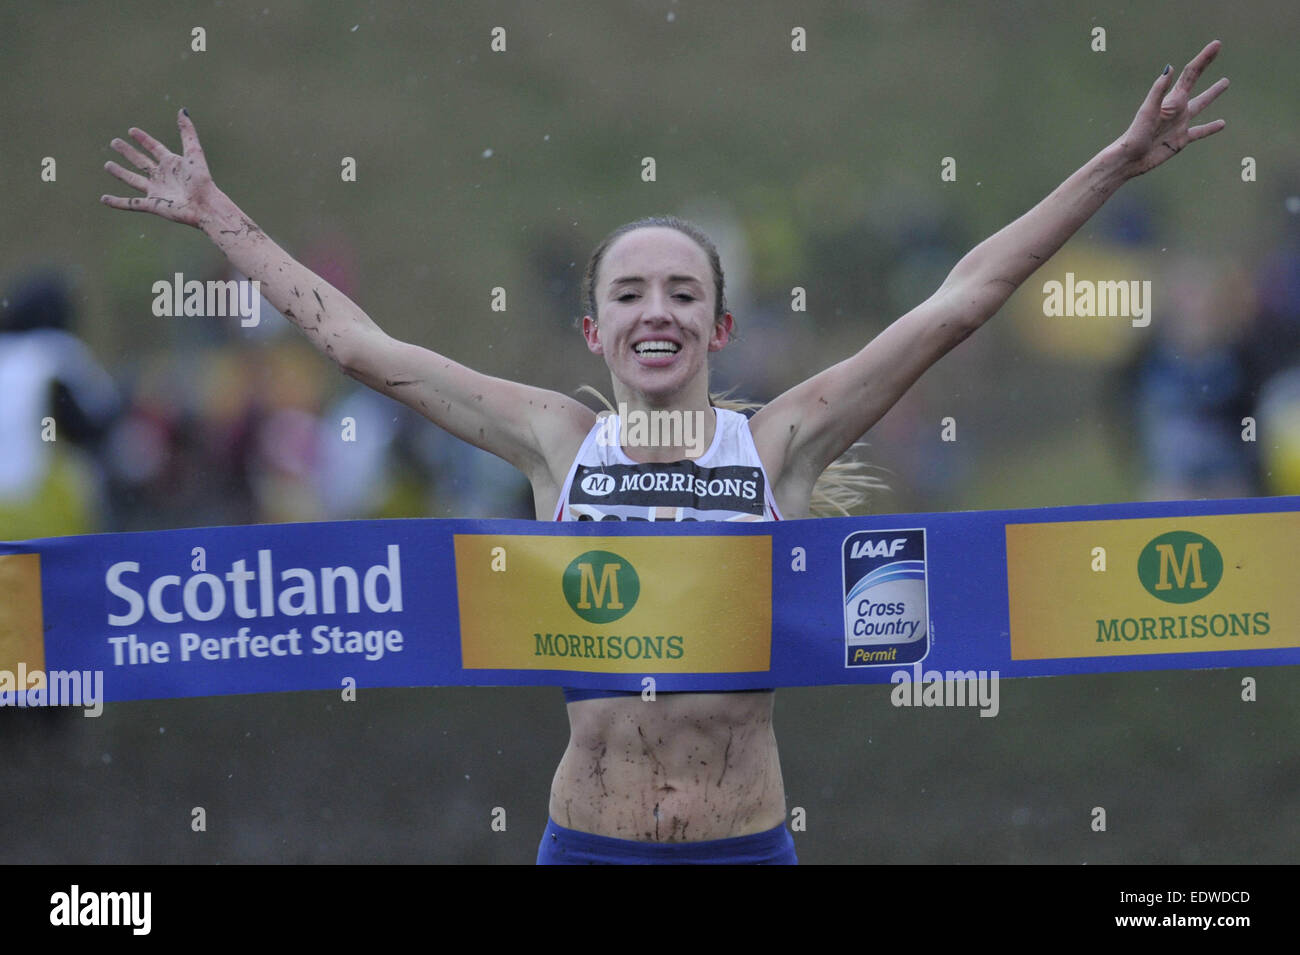 Edinburgh, Scotland, UK. 10th January, 2015. More than 2500 competitors take park in a variety of races in Holyrood - Stock Image